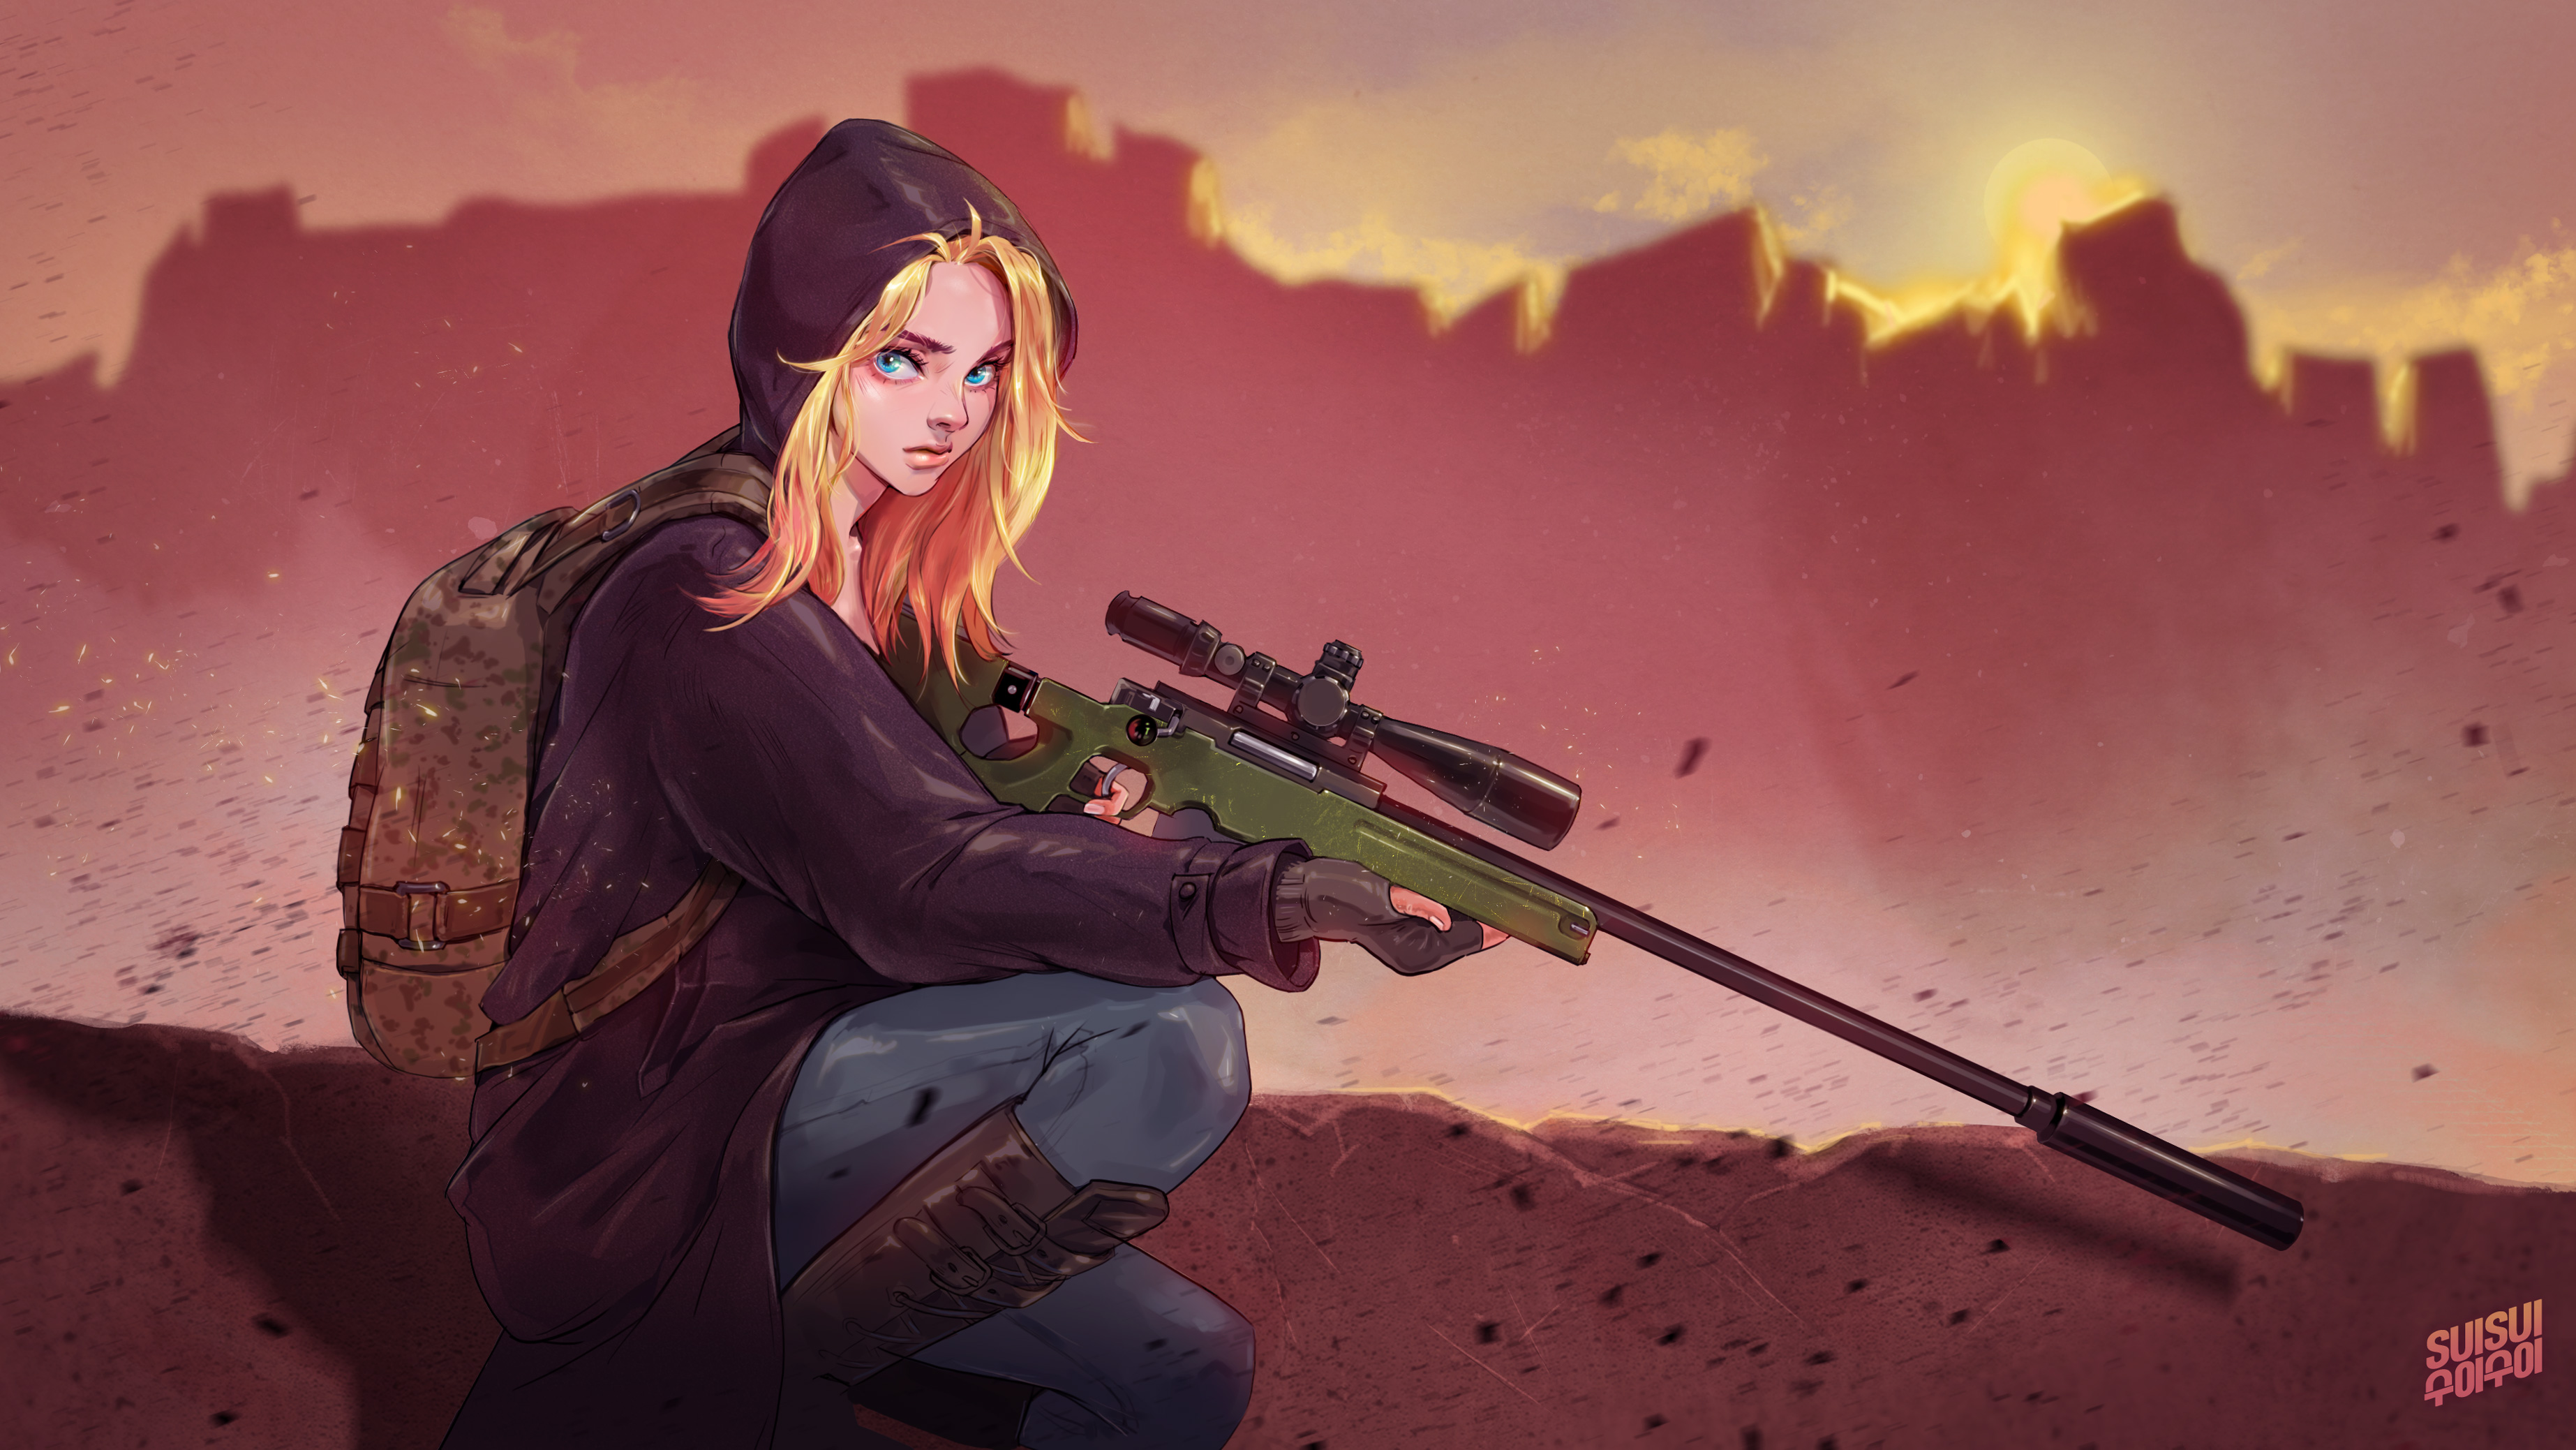 1360x768 Pubg Game Girl Fanart Laptop HD HD 4k Wallpapers